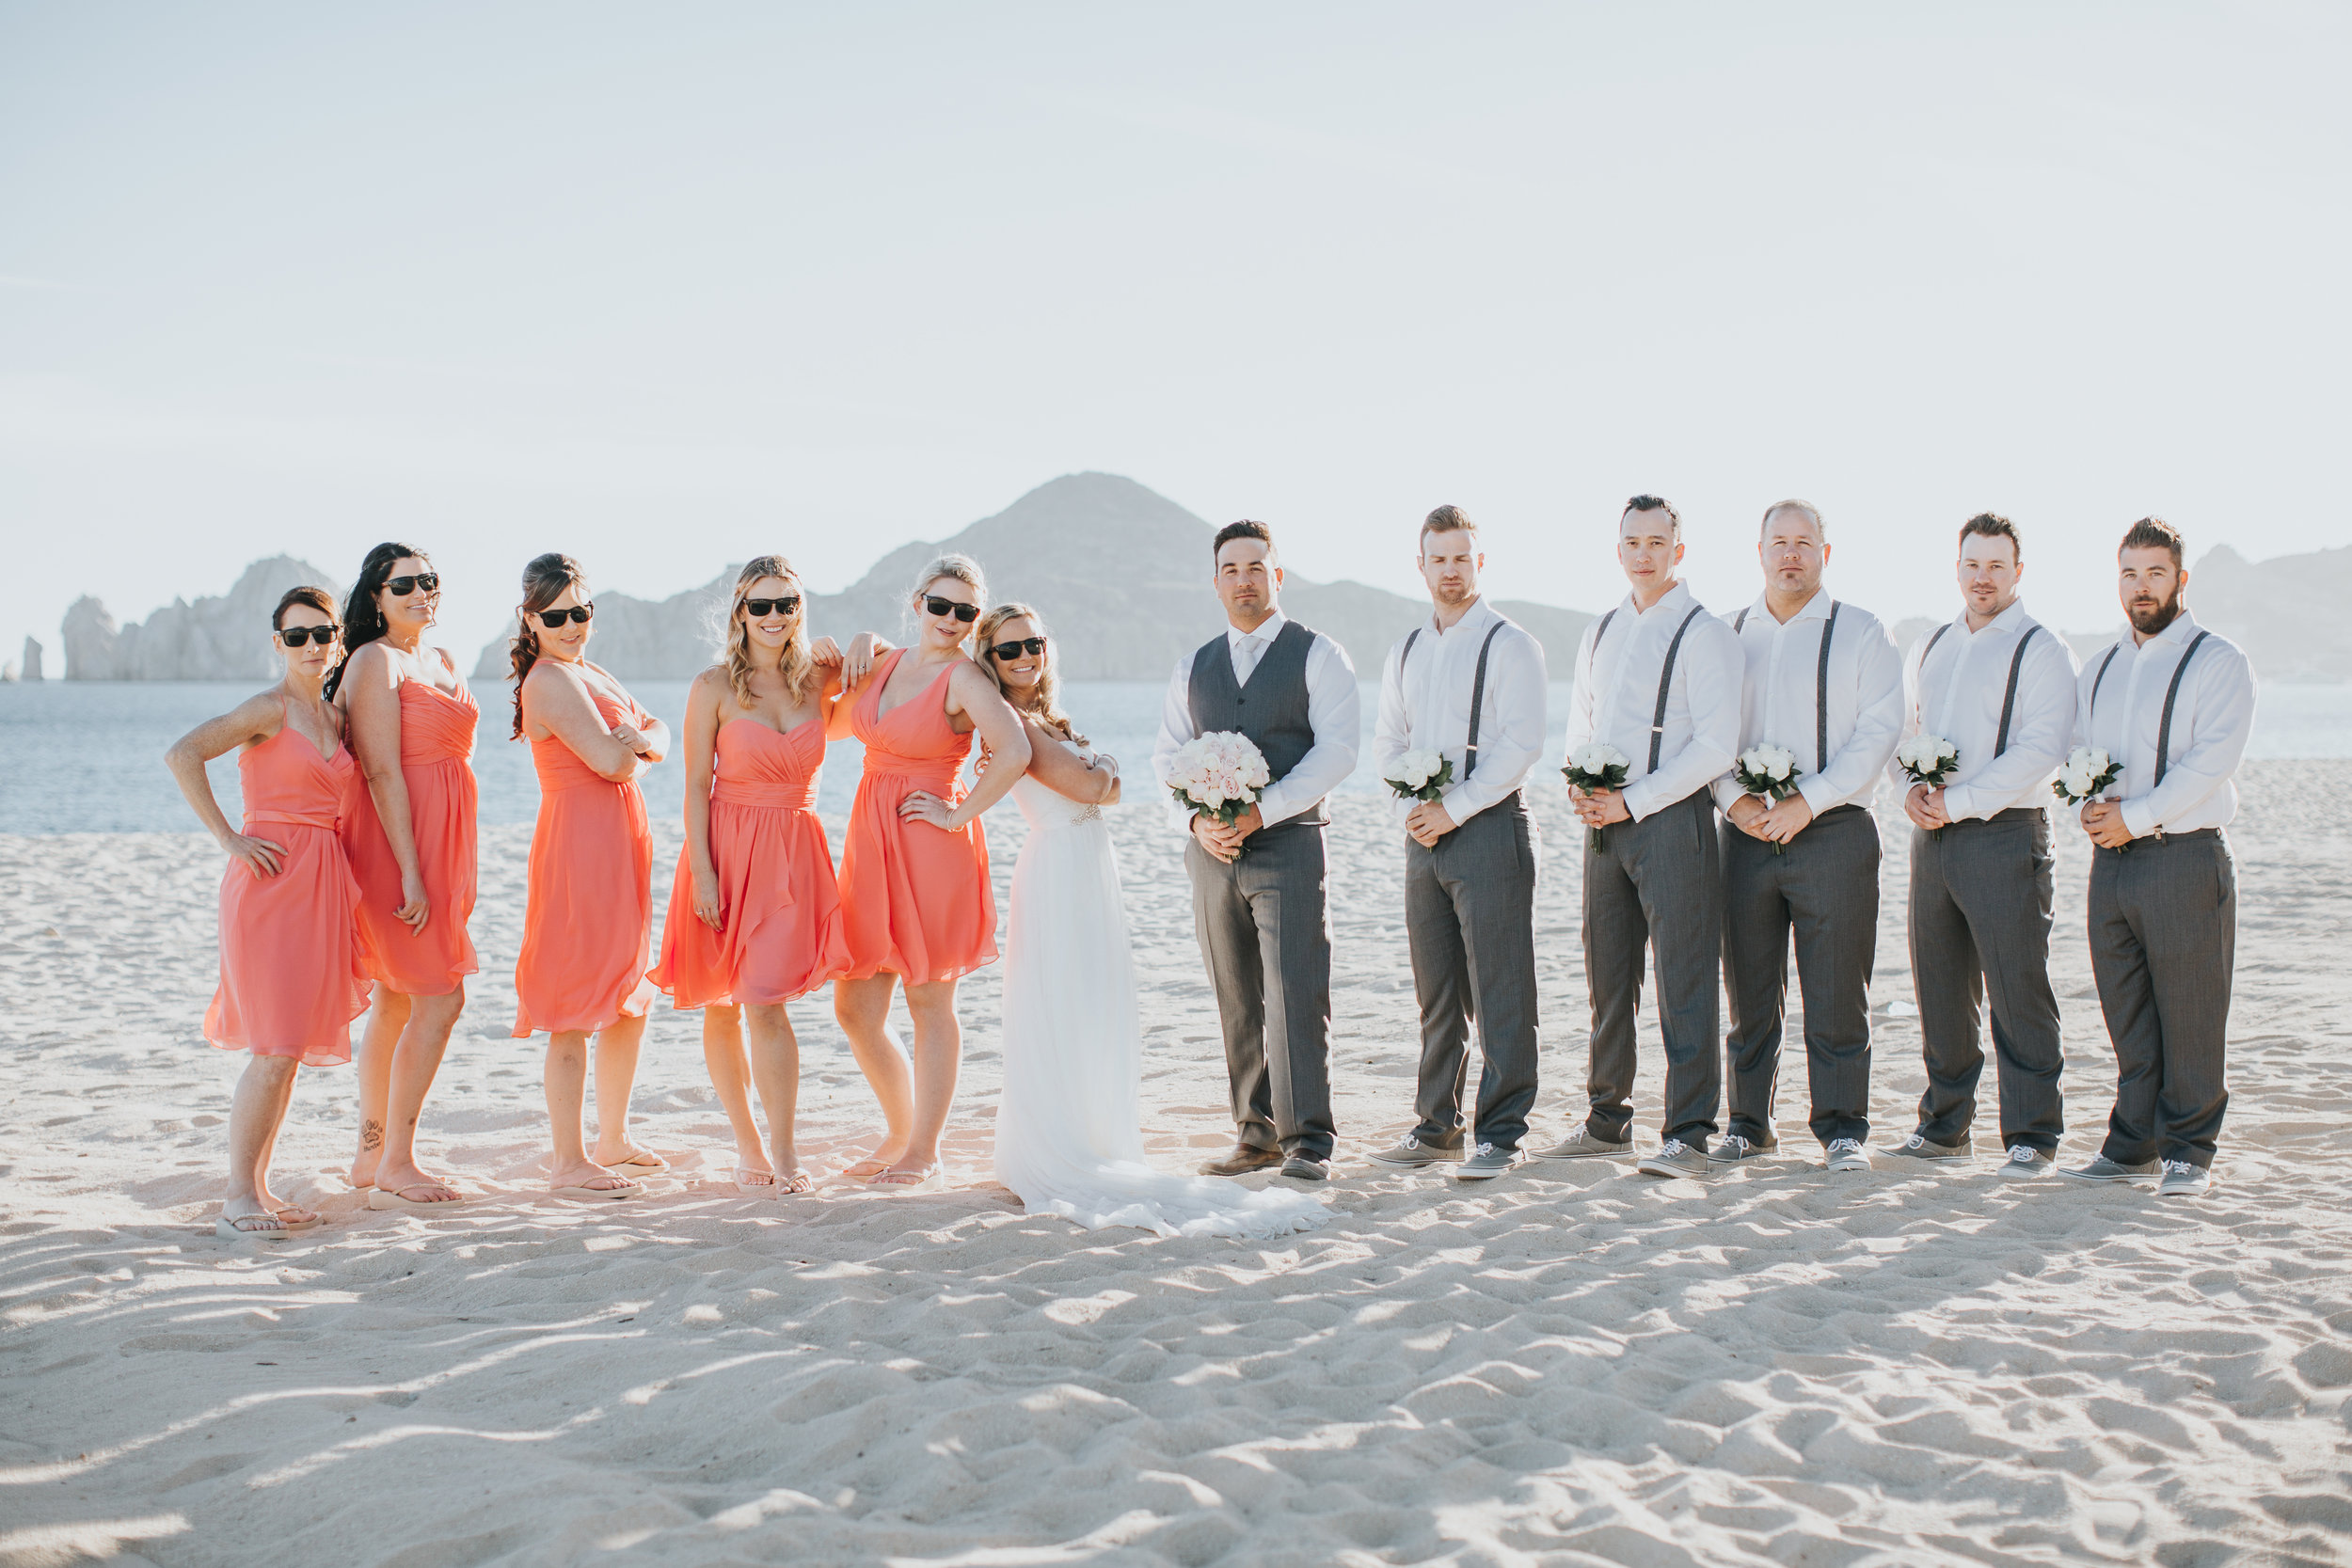 Ashleynickdestinationweddingmexicorivkahphotography-18.jpg